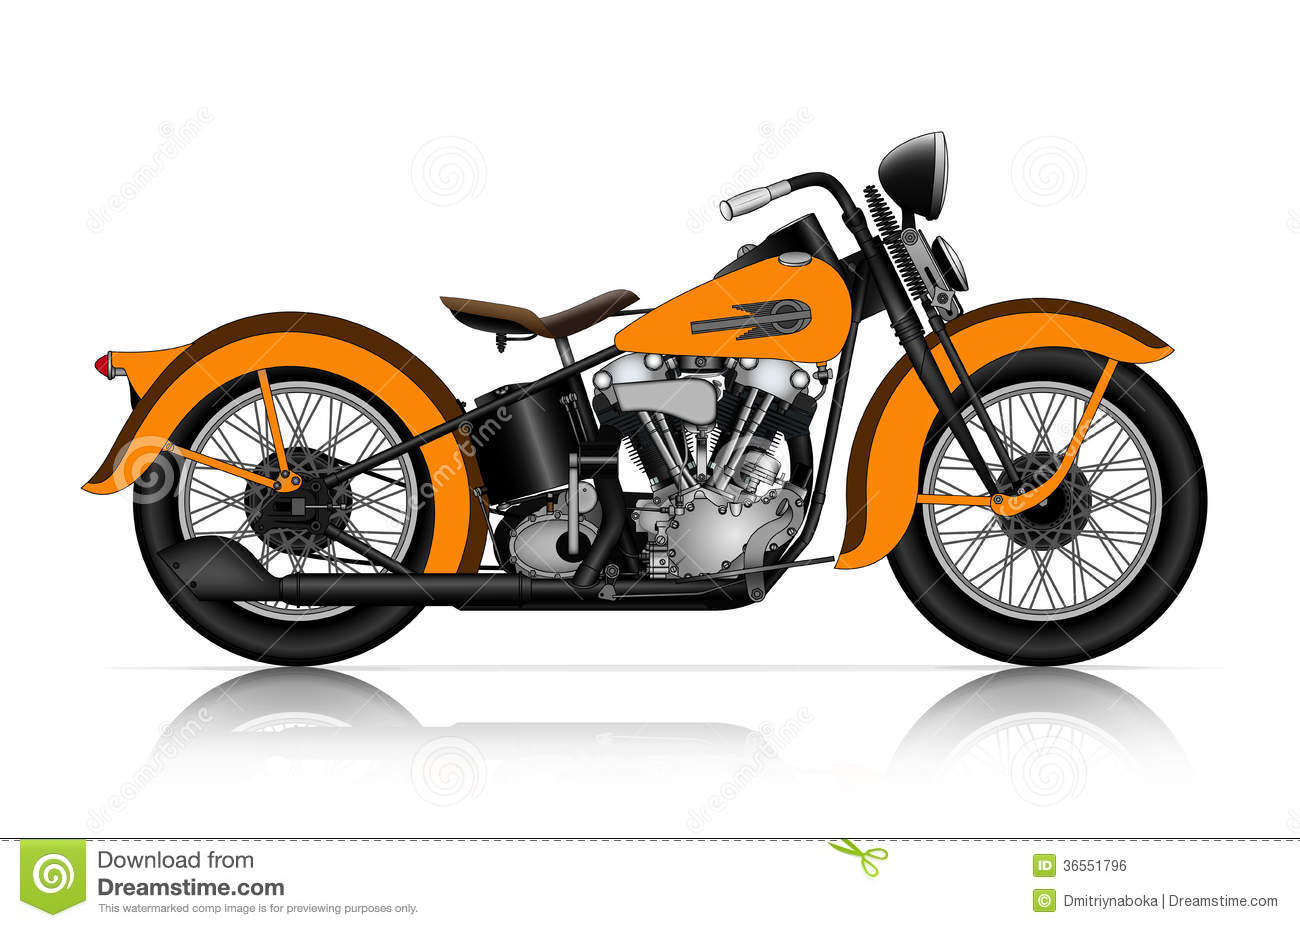 Highly Detailed Illustration Of Classic Motorcycle Royalty Free Stock ...